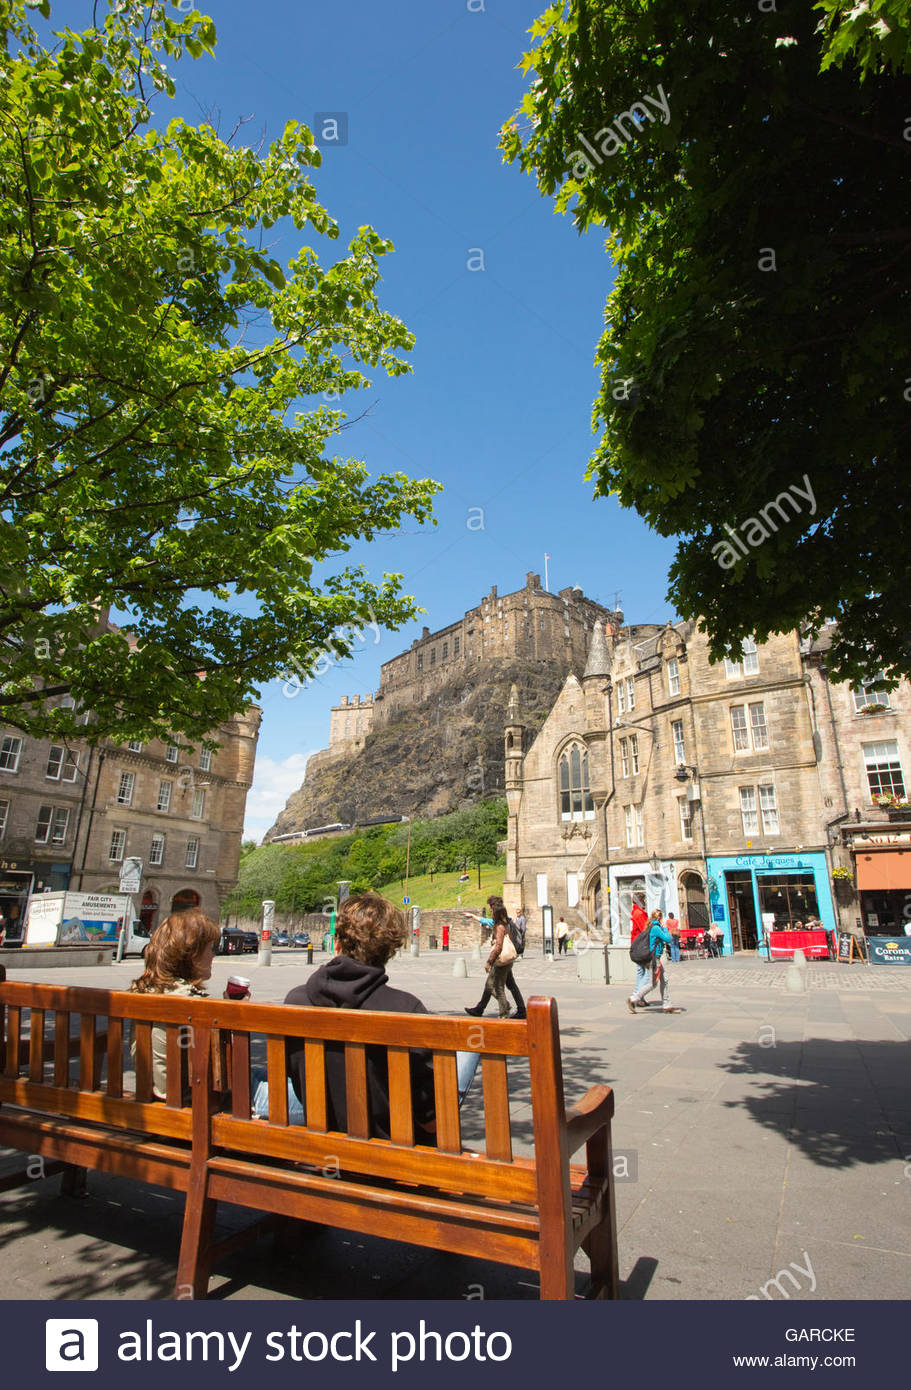 People in the Grassmarket with a view to the castle behind in the city centre of Edinburgh, Scotland. - Stock Image